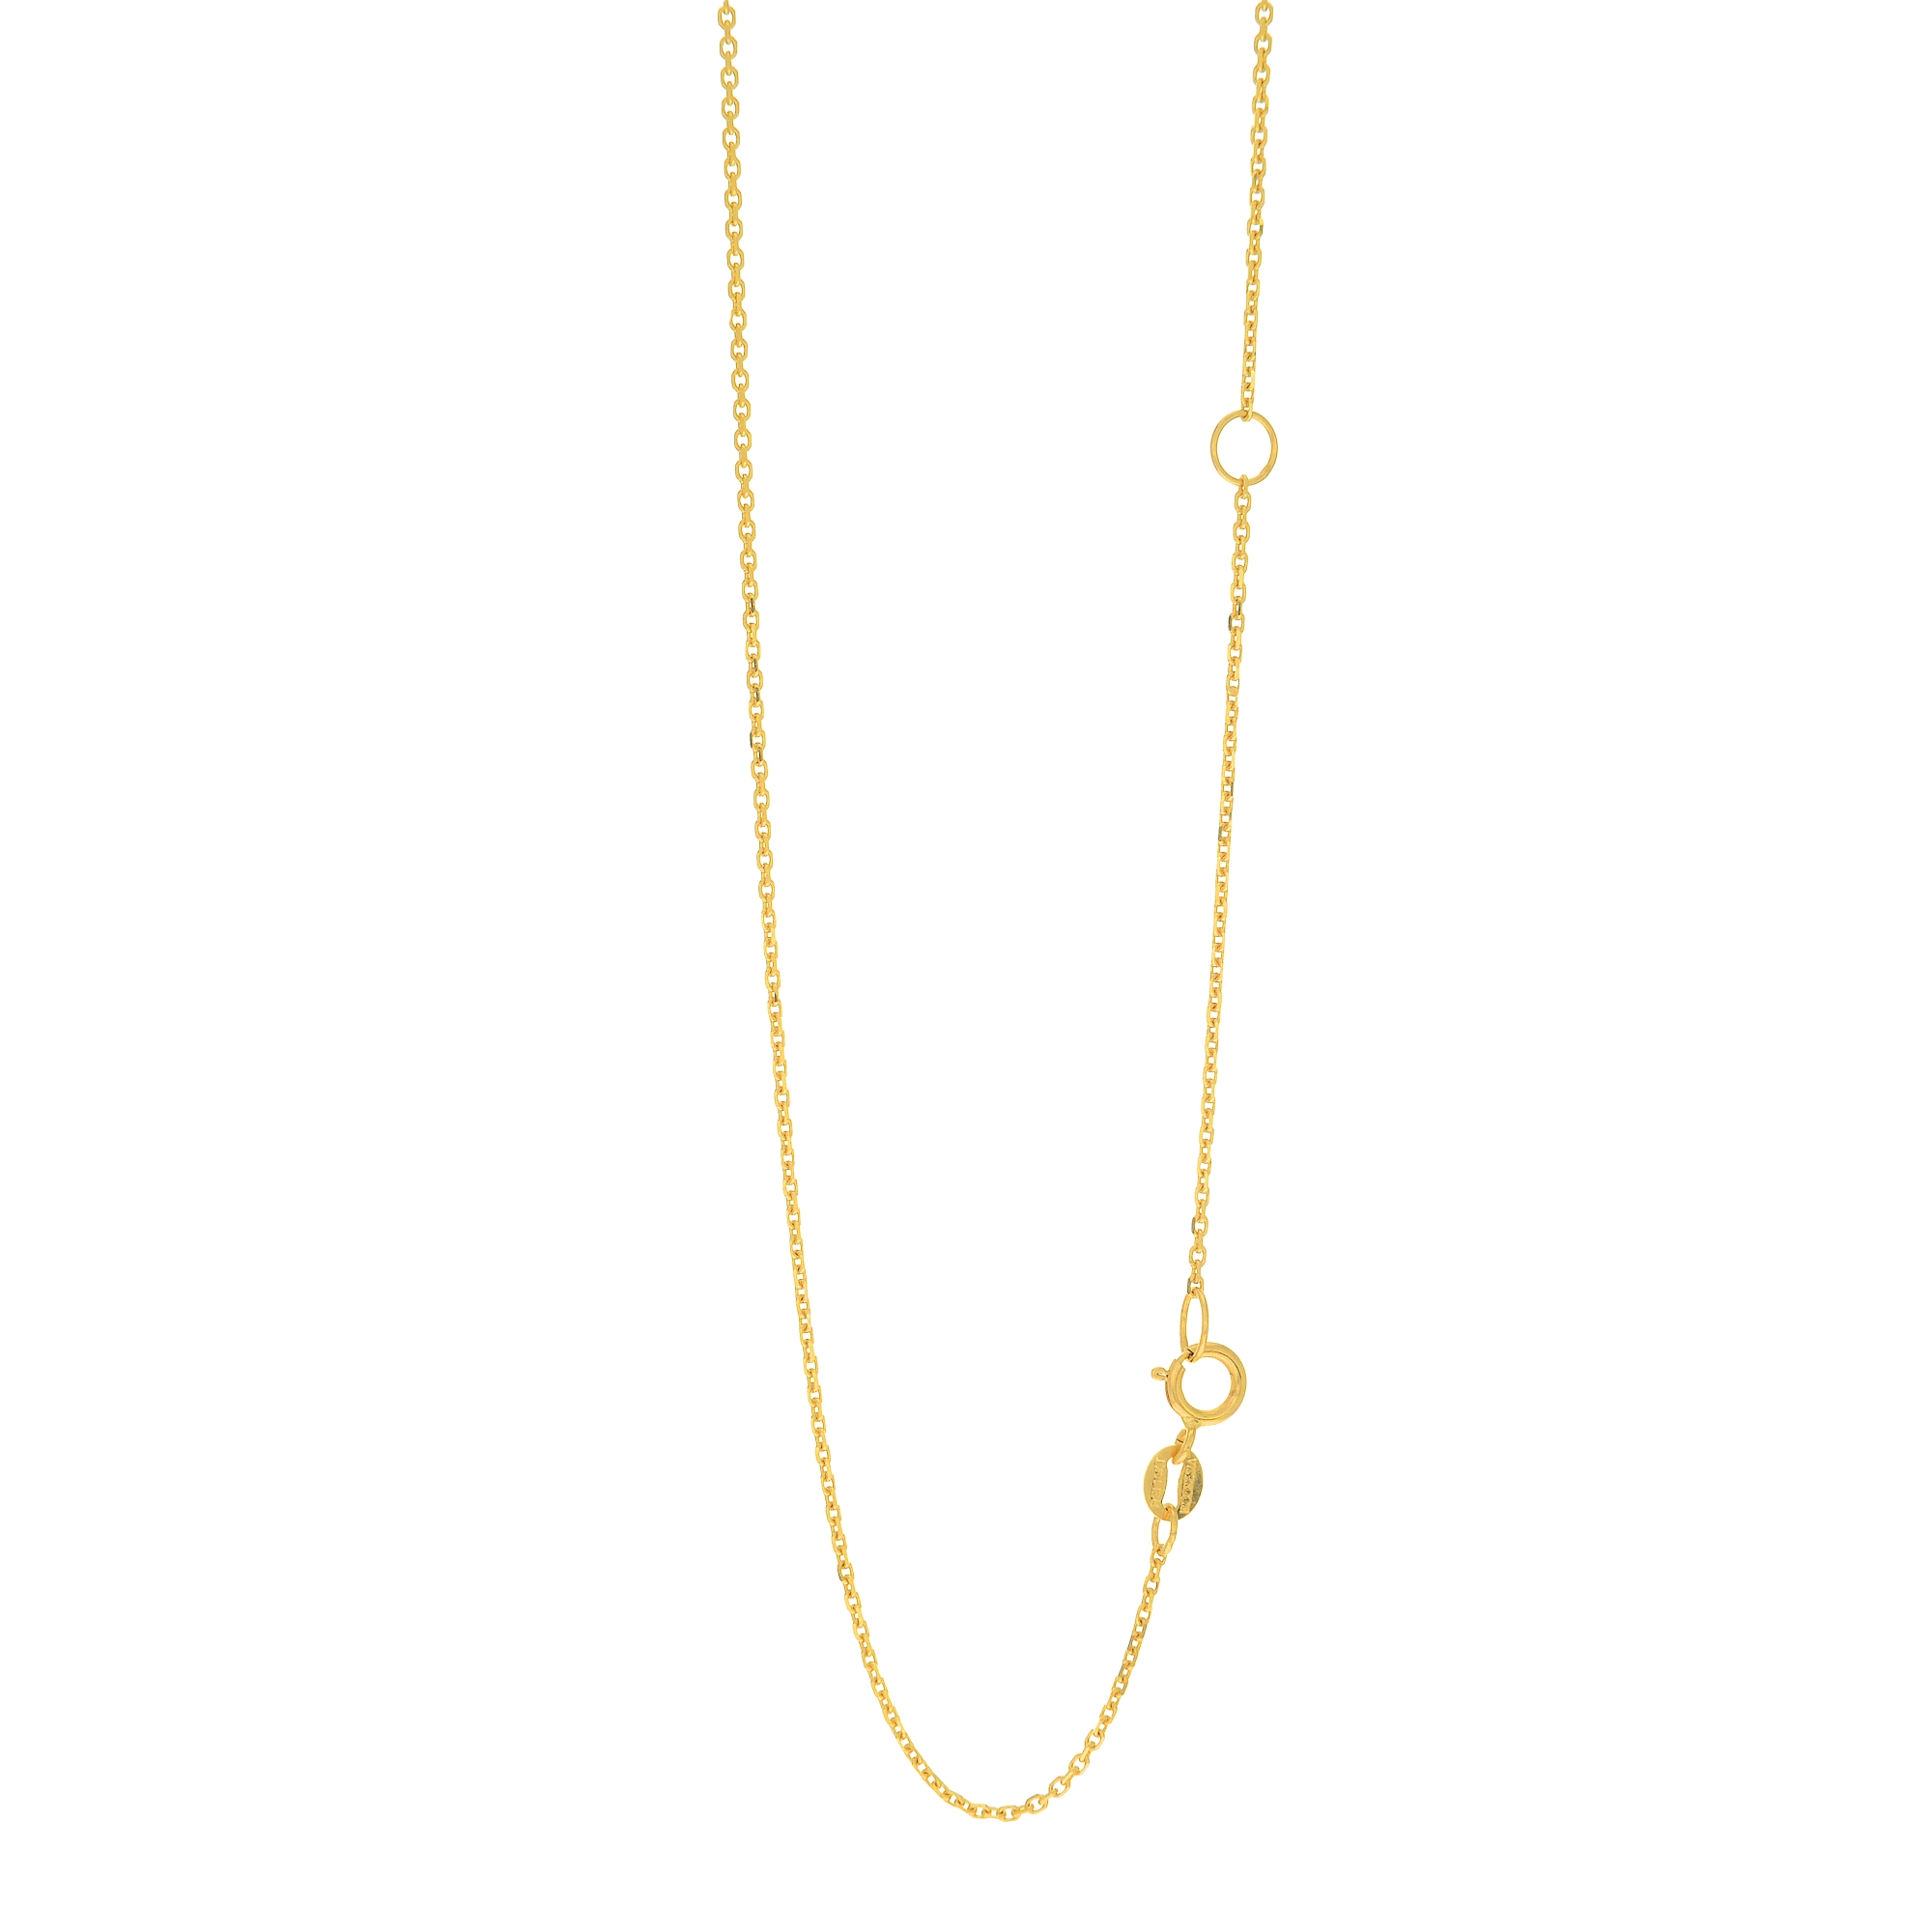 LUXURMAN Solid 14k Gold Cable Chain For Women Extendable 1.1mm Wide